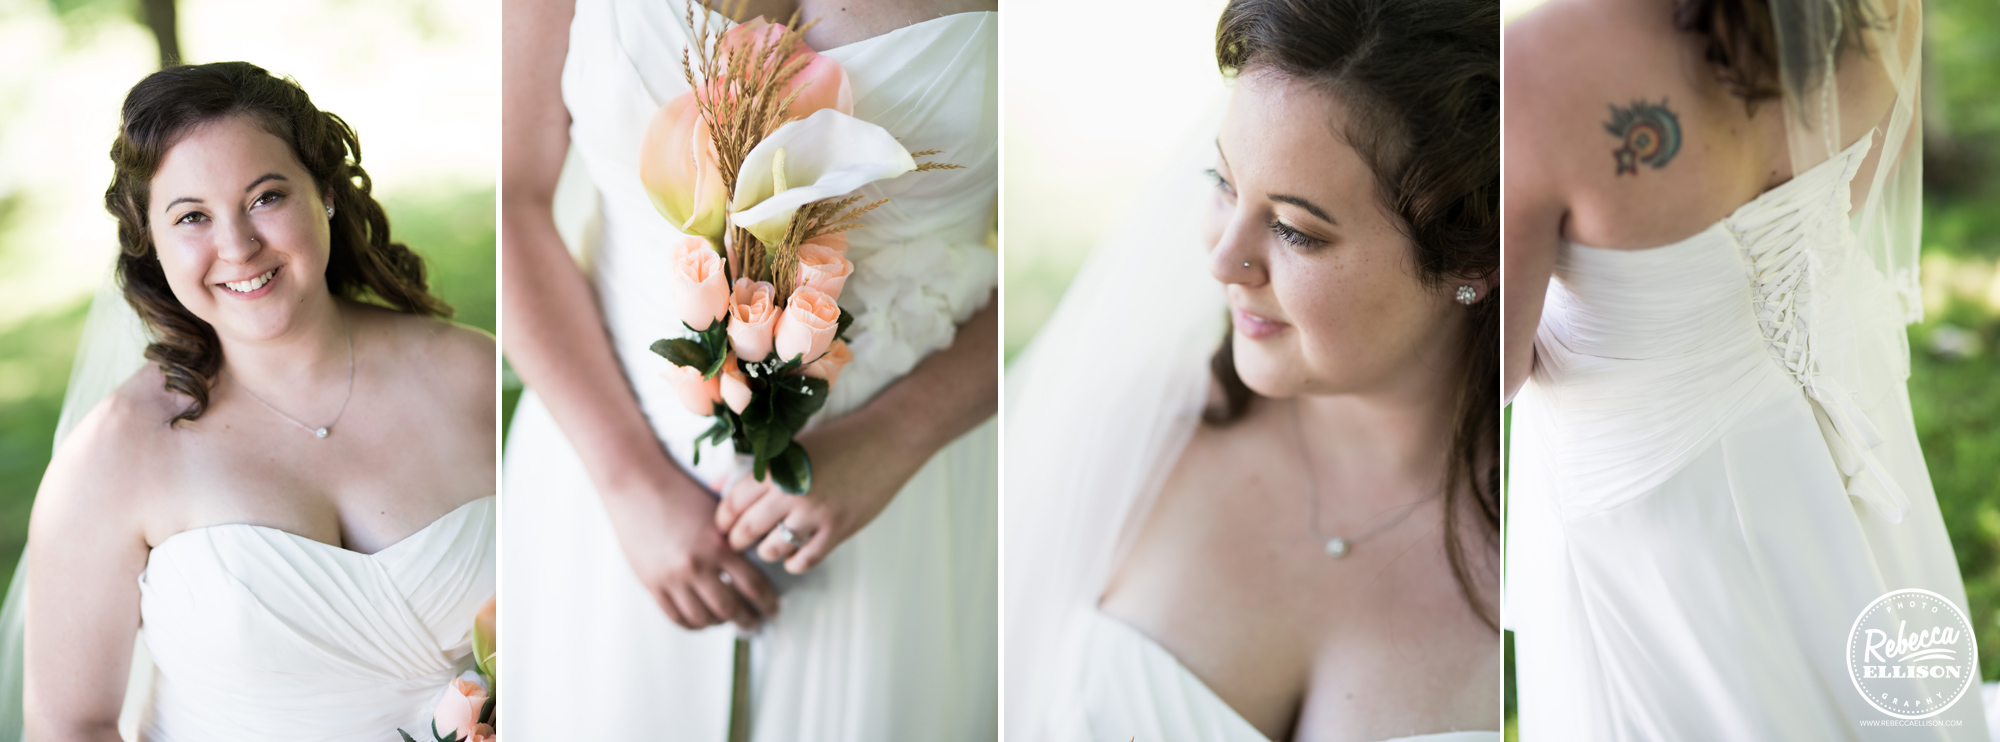 Bride details featuring a white strapless corset back wedding dress and fake peach and white flowers photographed by Rebecca Ellison photography